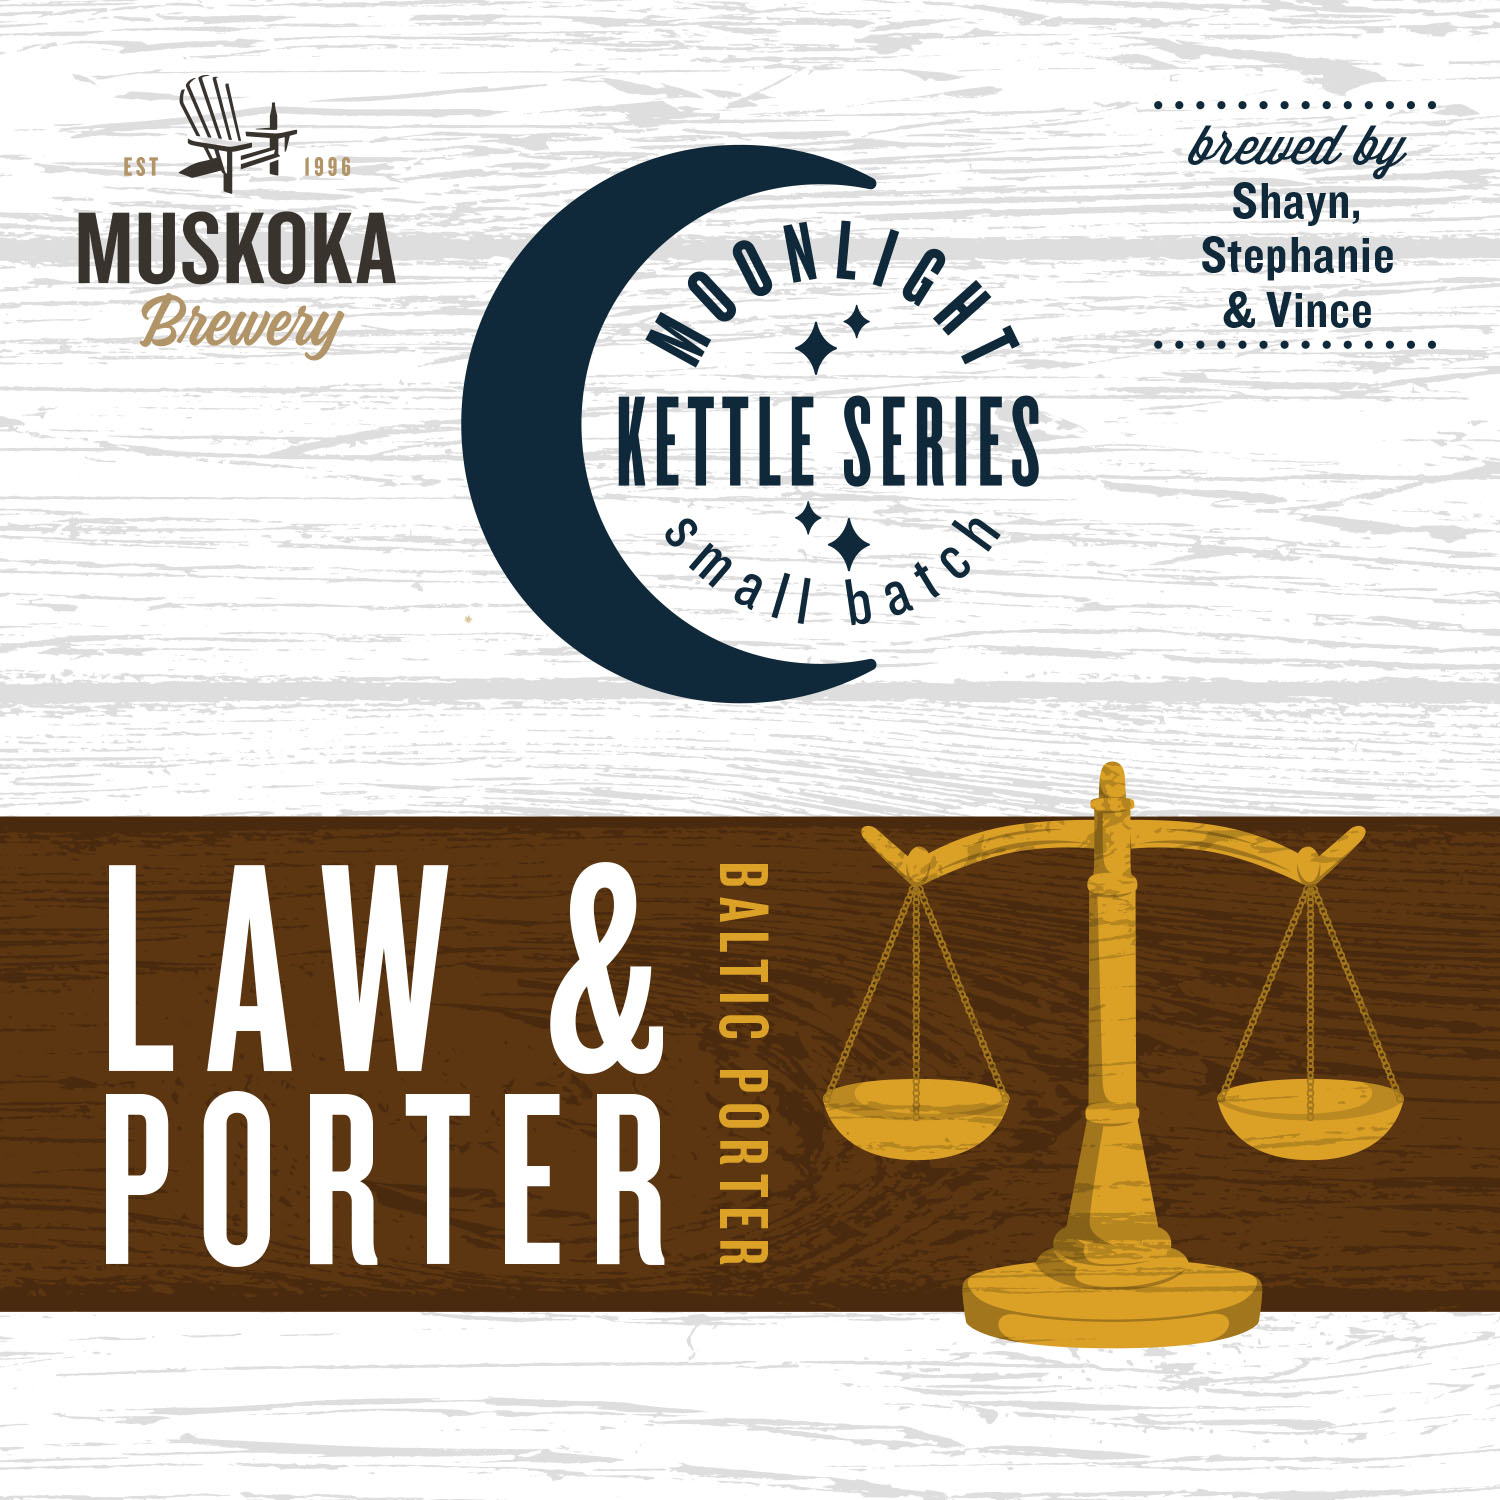 Muskoka Brewery's Law & Porter Baltic Porter from the Moonlight Kettle Series, created by Shayne, Steph and Vince.